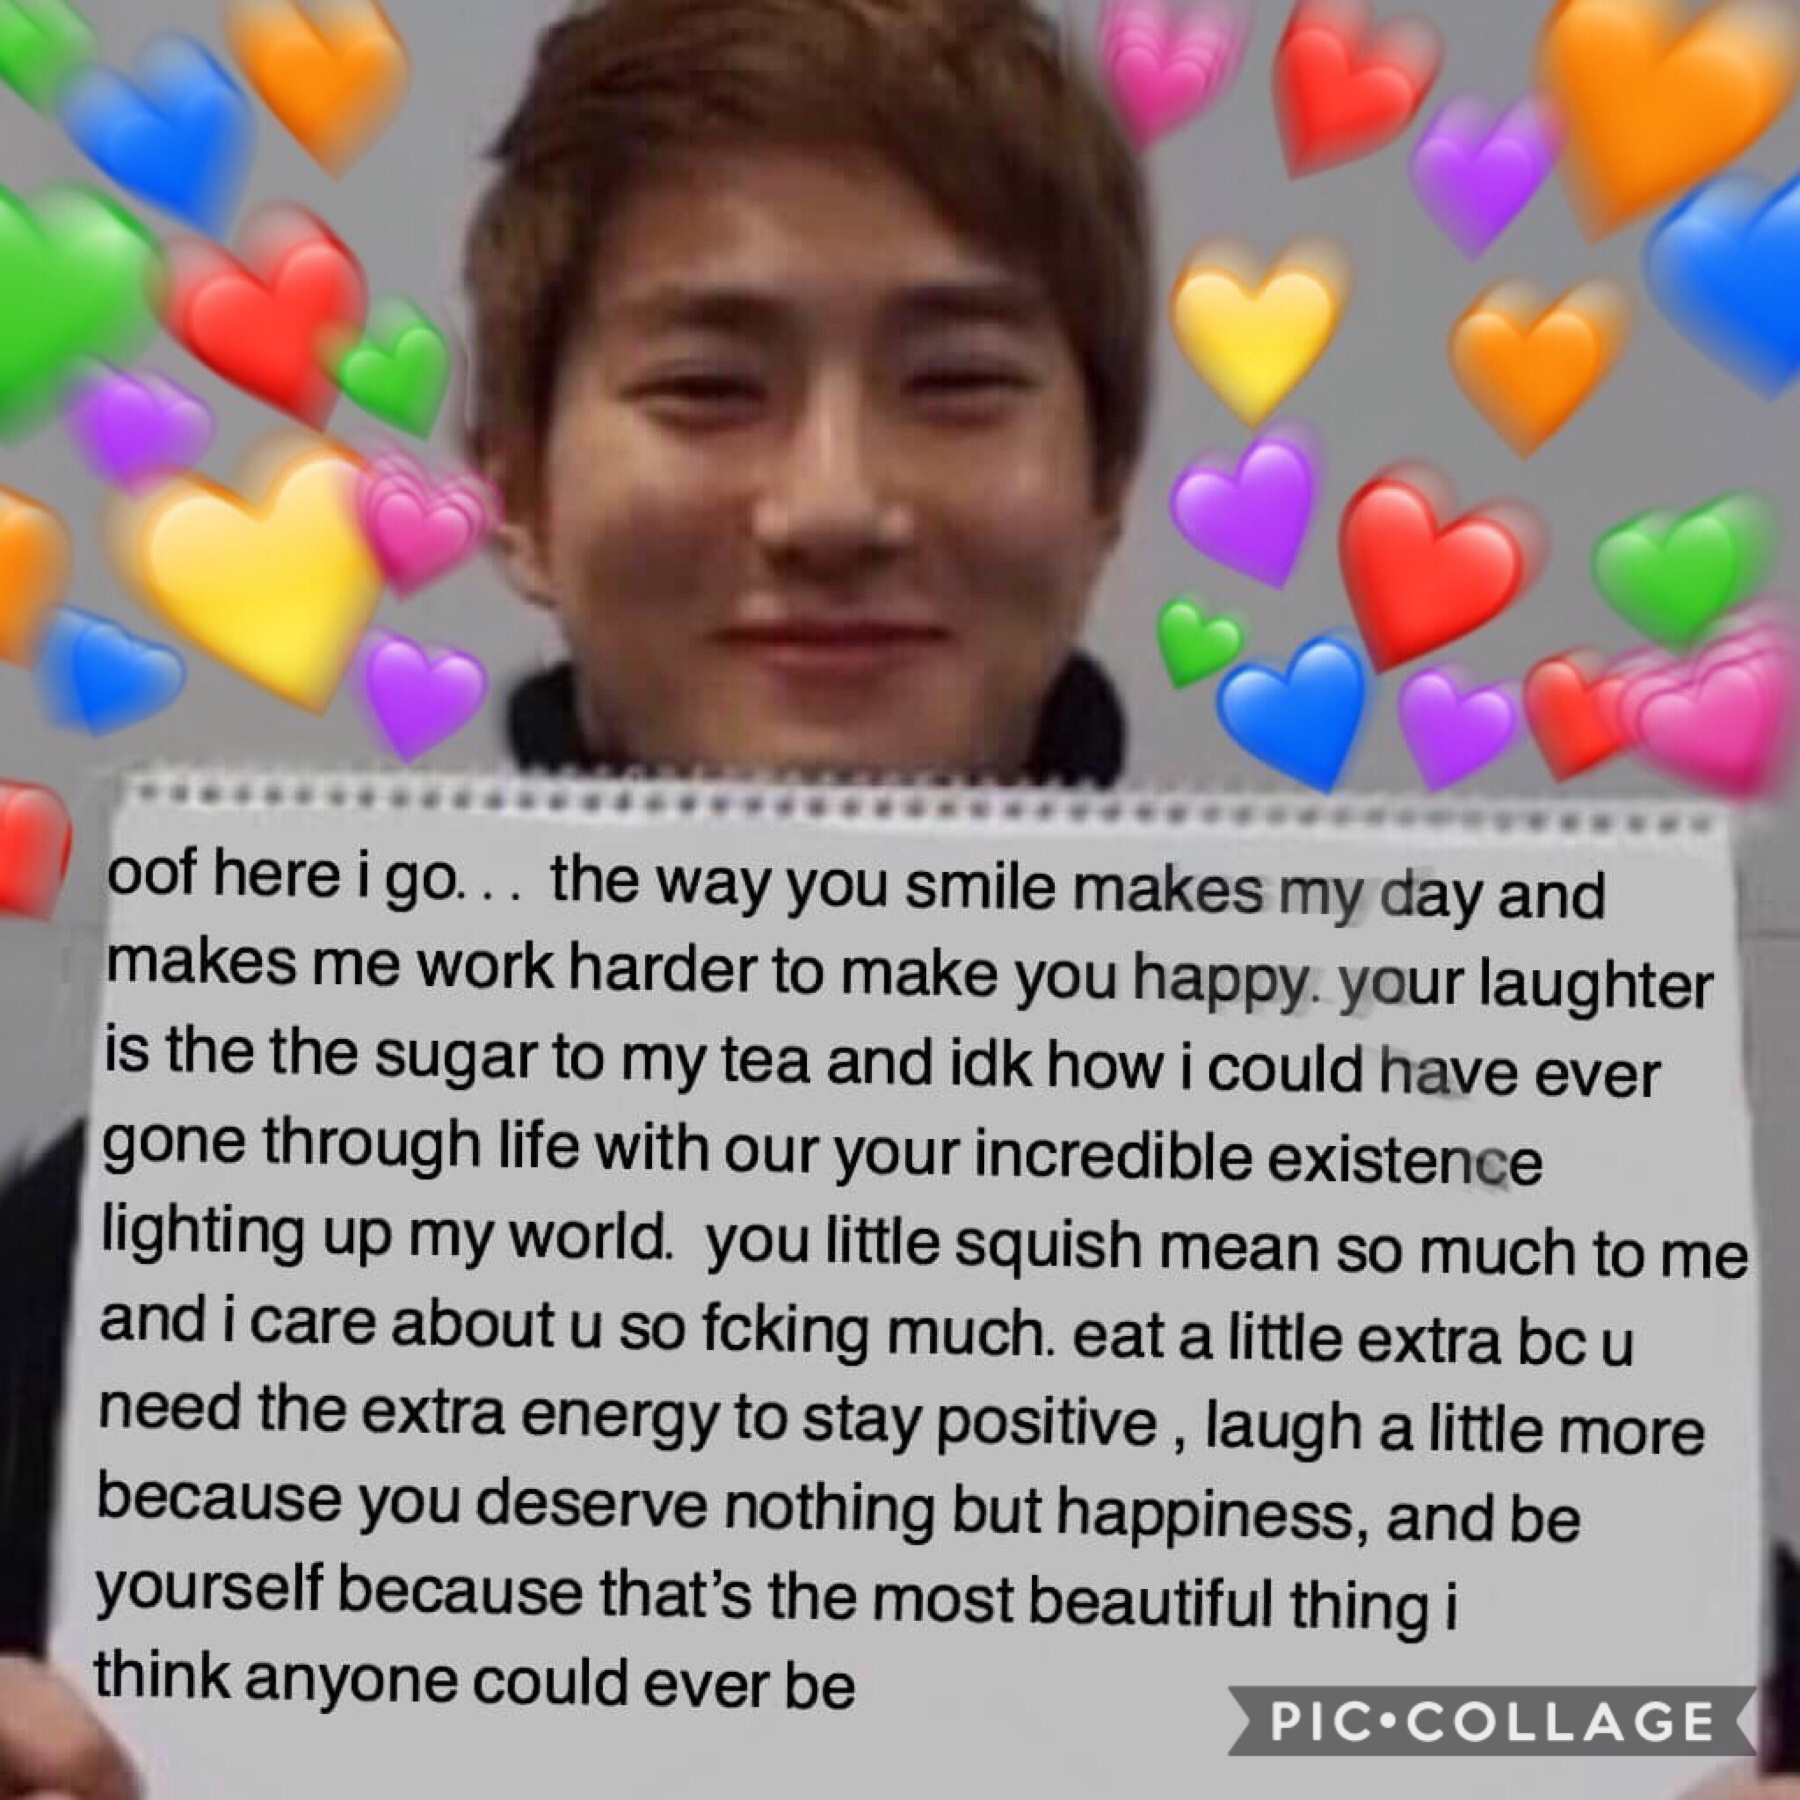 hellu im the other person on this acc... here's my first post! just wrote this while thinking about all the ppl i love (u know who u r) ❤️